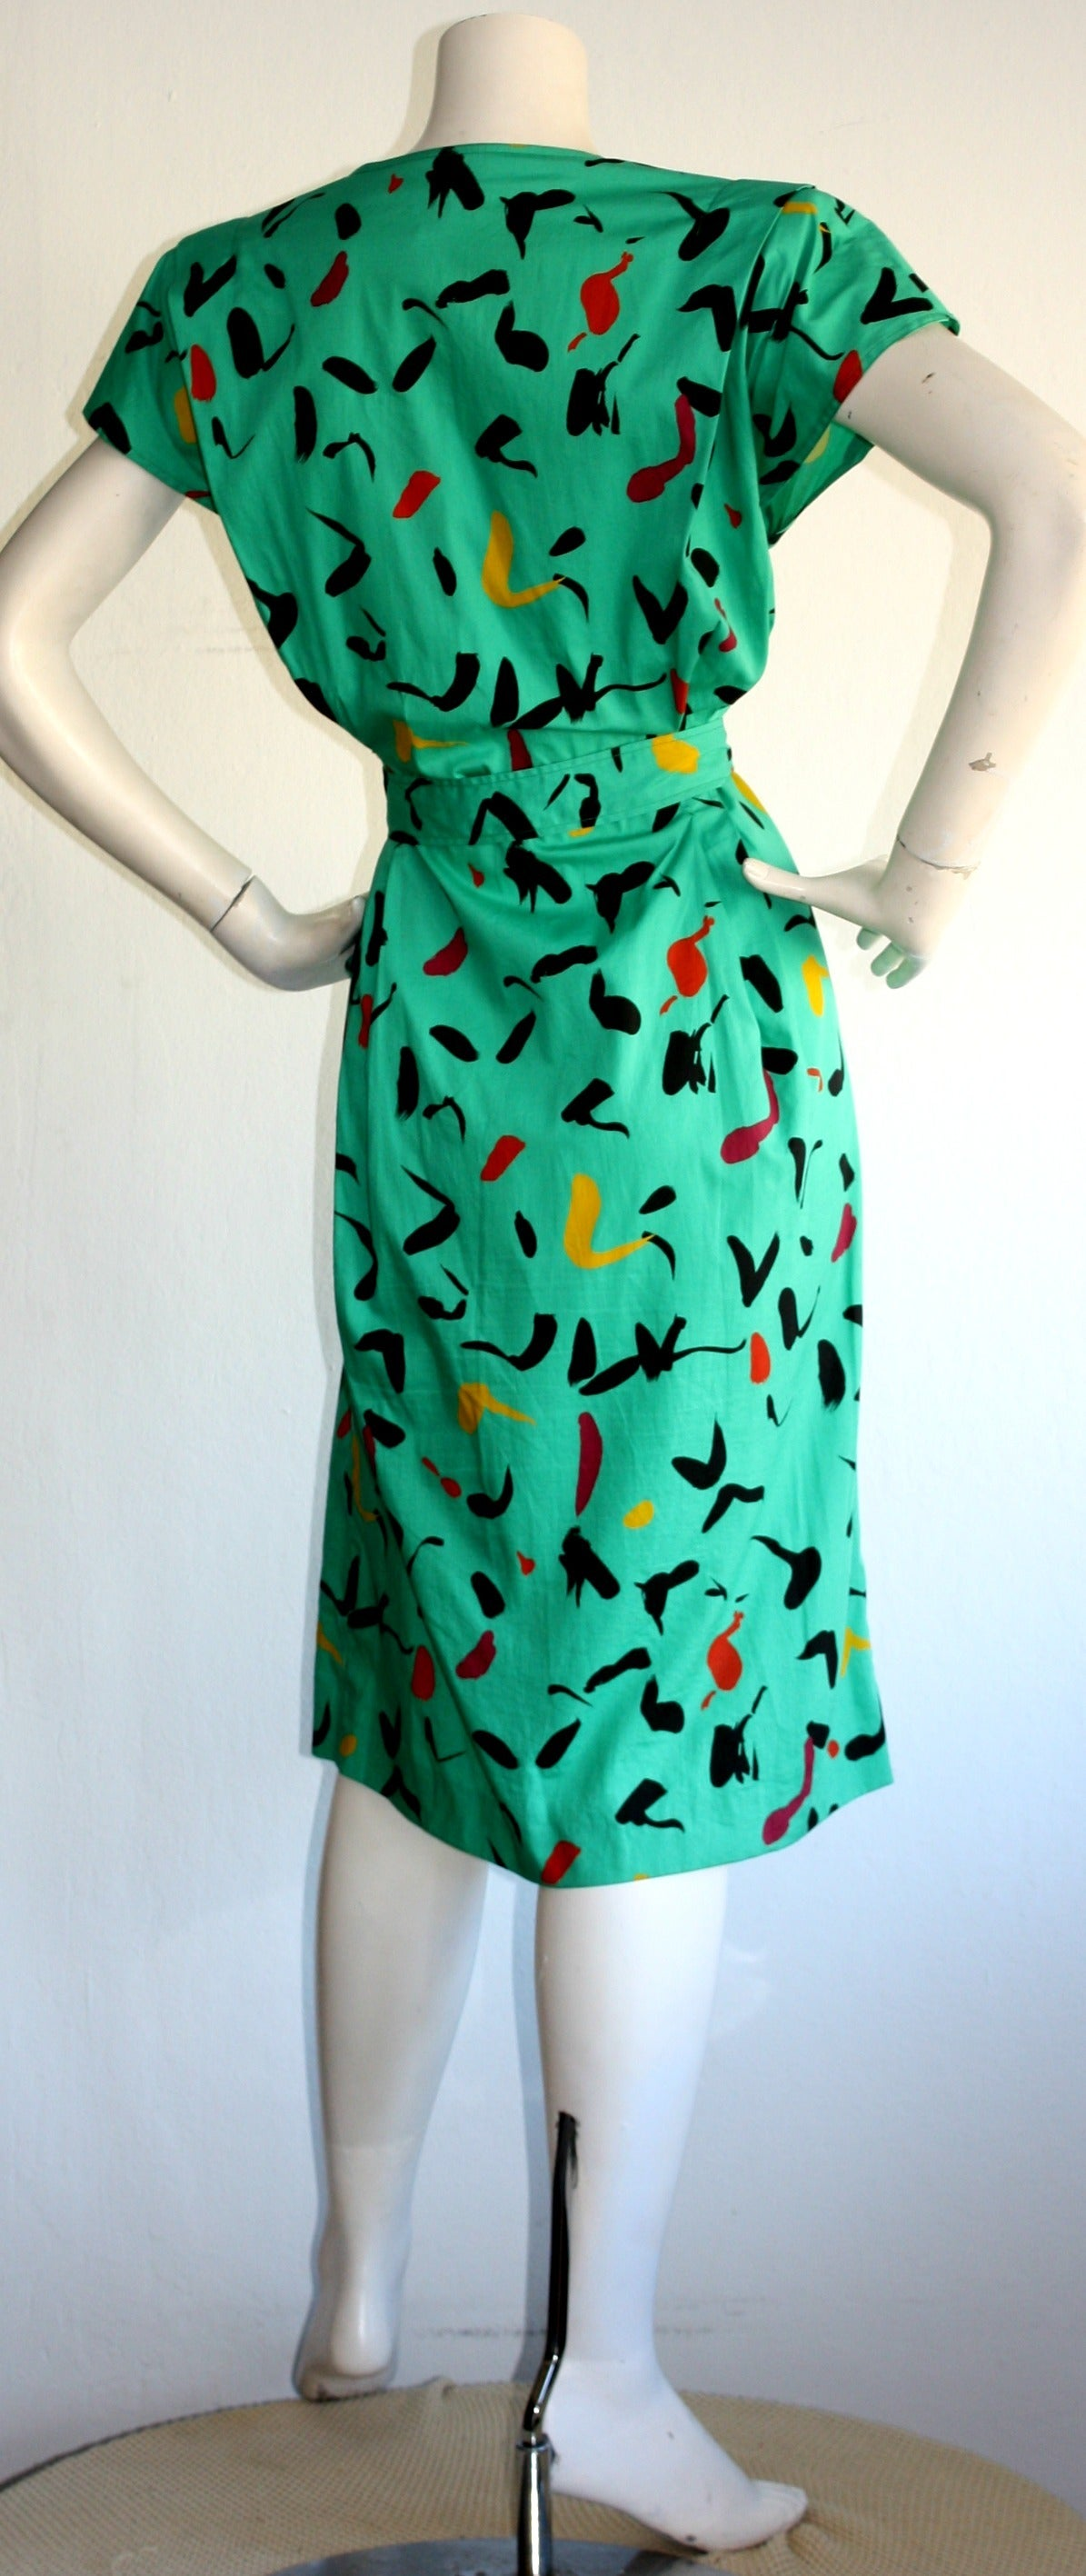 Vintage Emanuel Ungaro Dress Avant Garde Kelly Green Graffiti Scribble W/ Belt 5